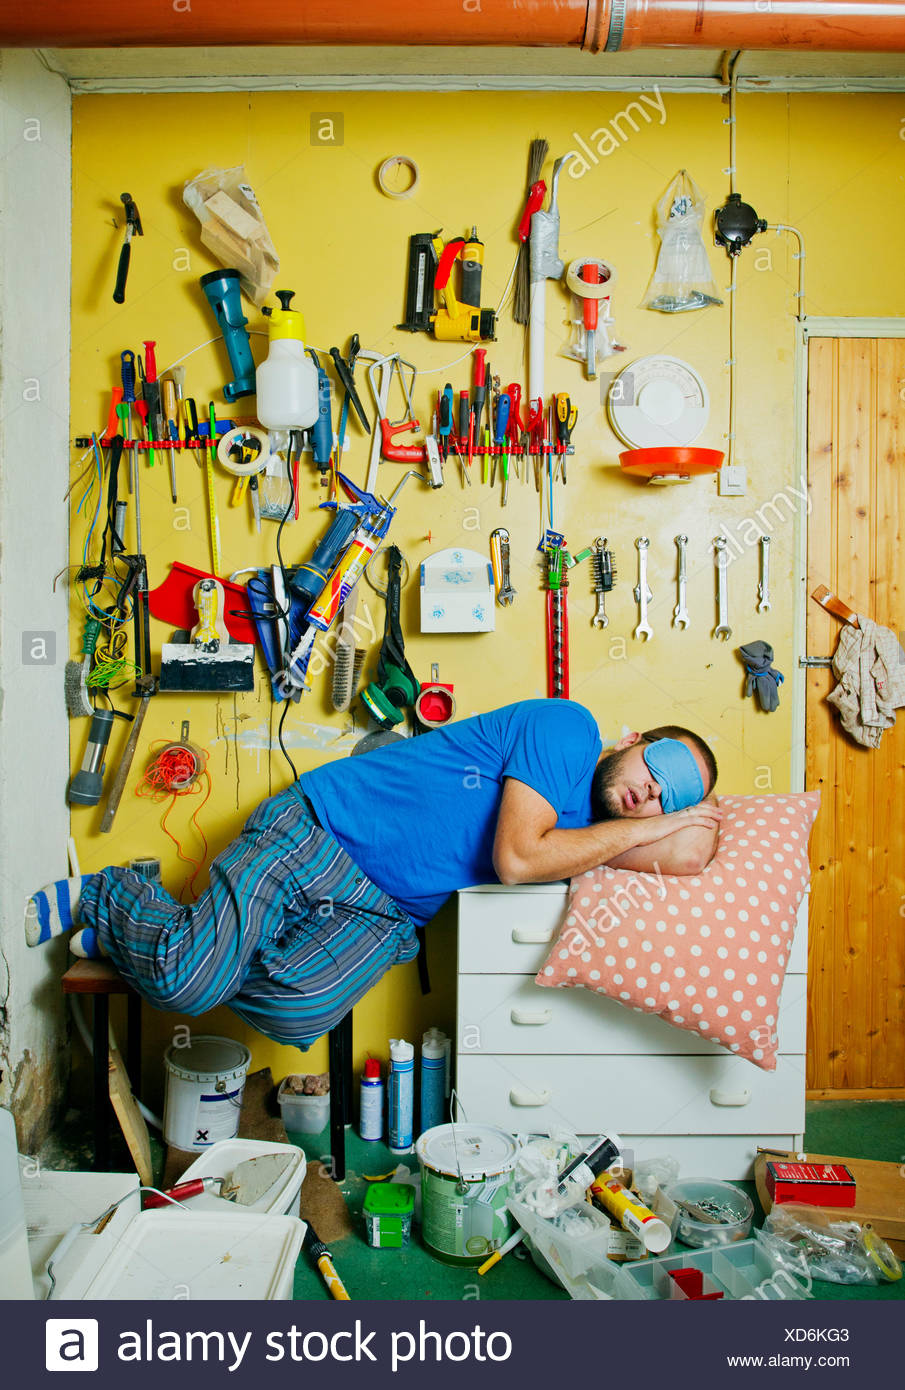 Man sleeping on workshop's table - Stock Image